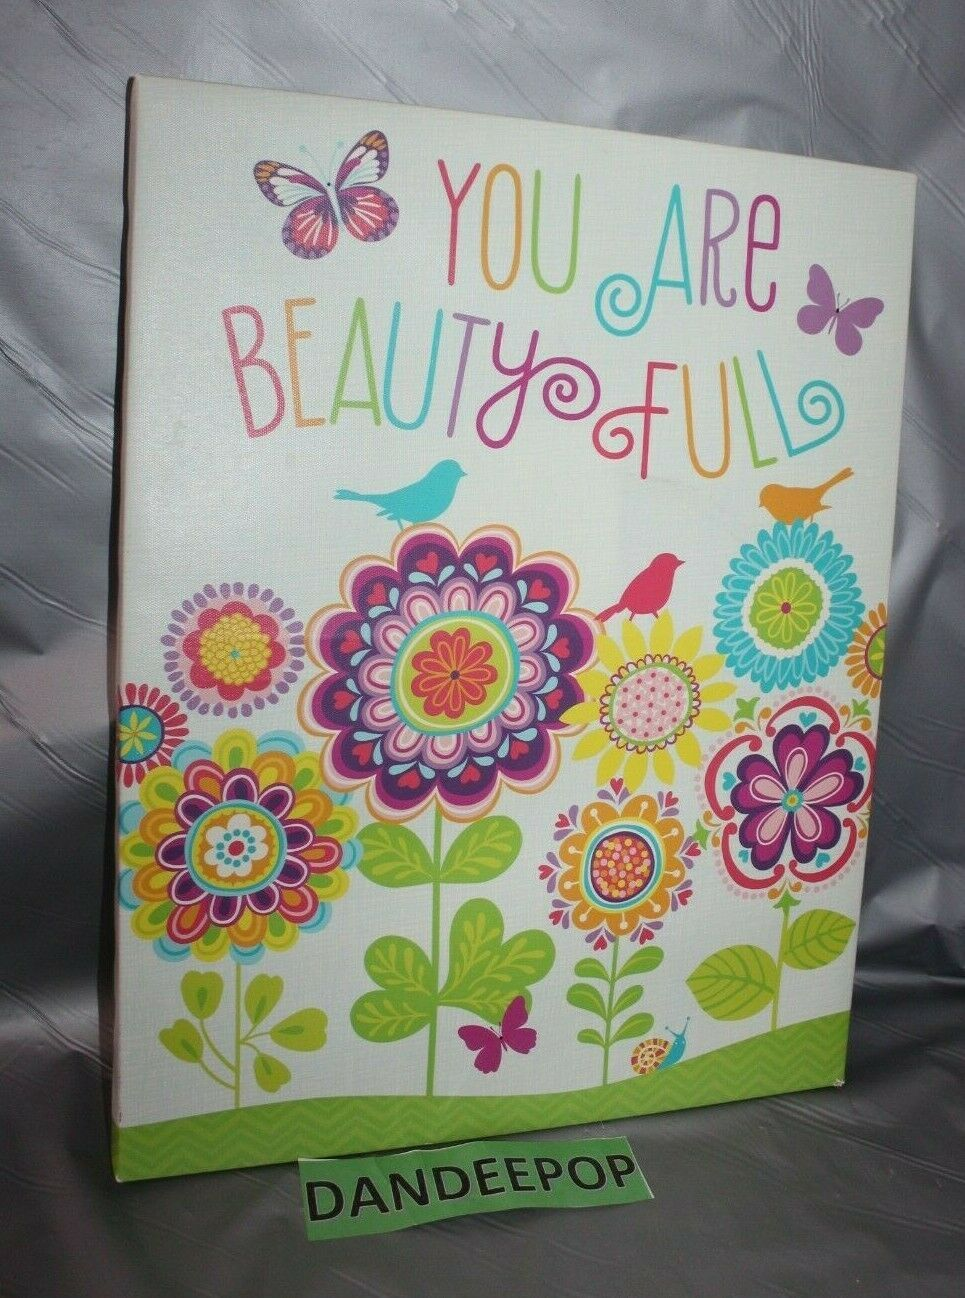 Primary image for You Are Beauty Full Beautiful Oopsy Daisy Too Art Canvas Wall Hanging 14 x 18